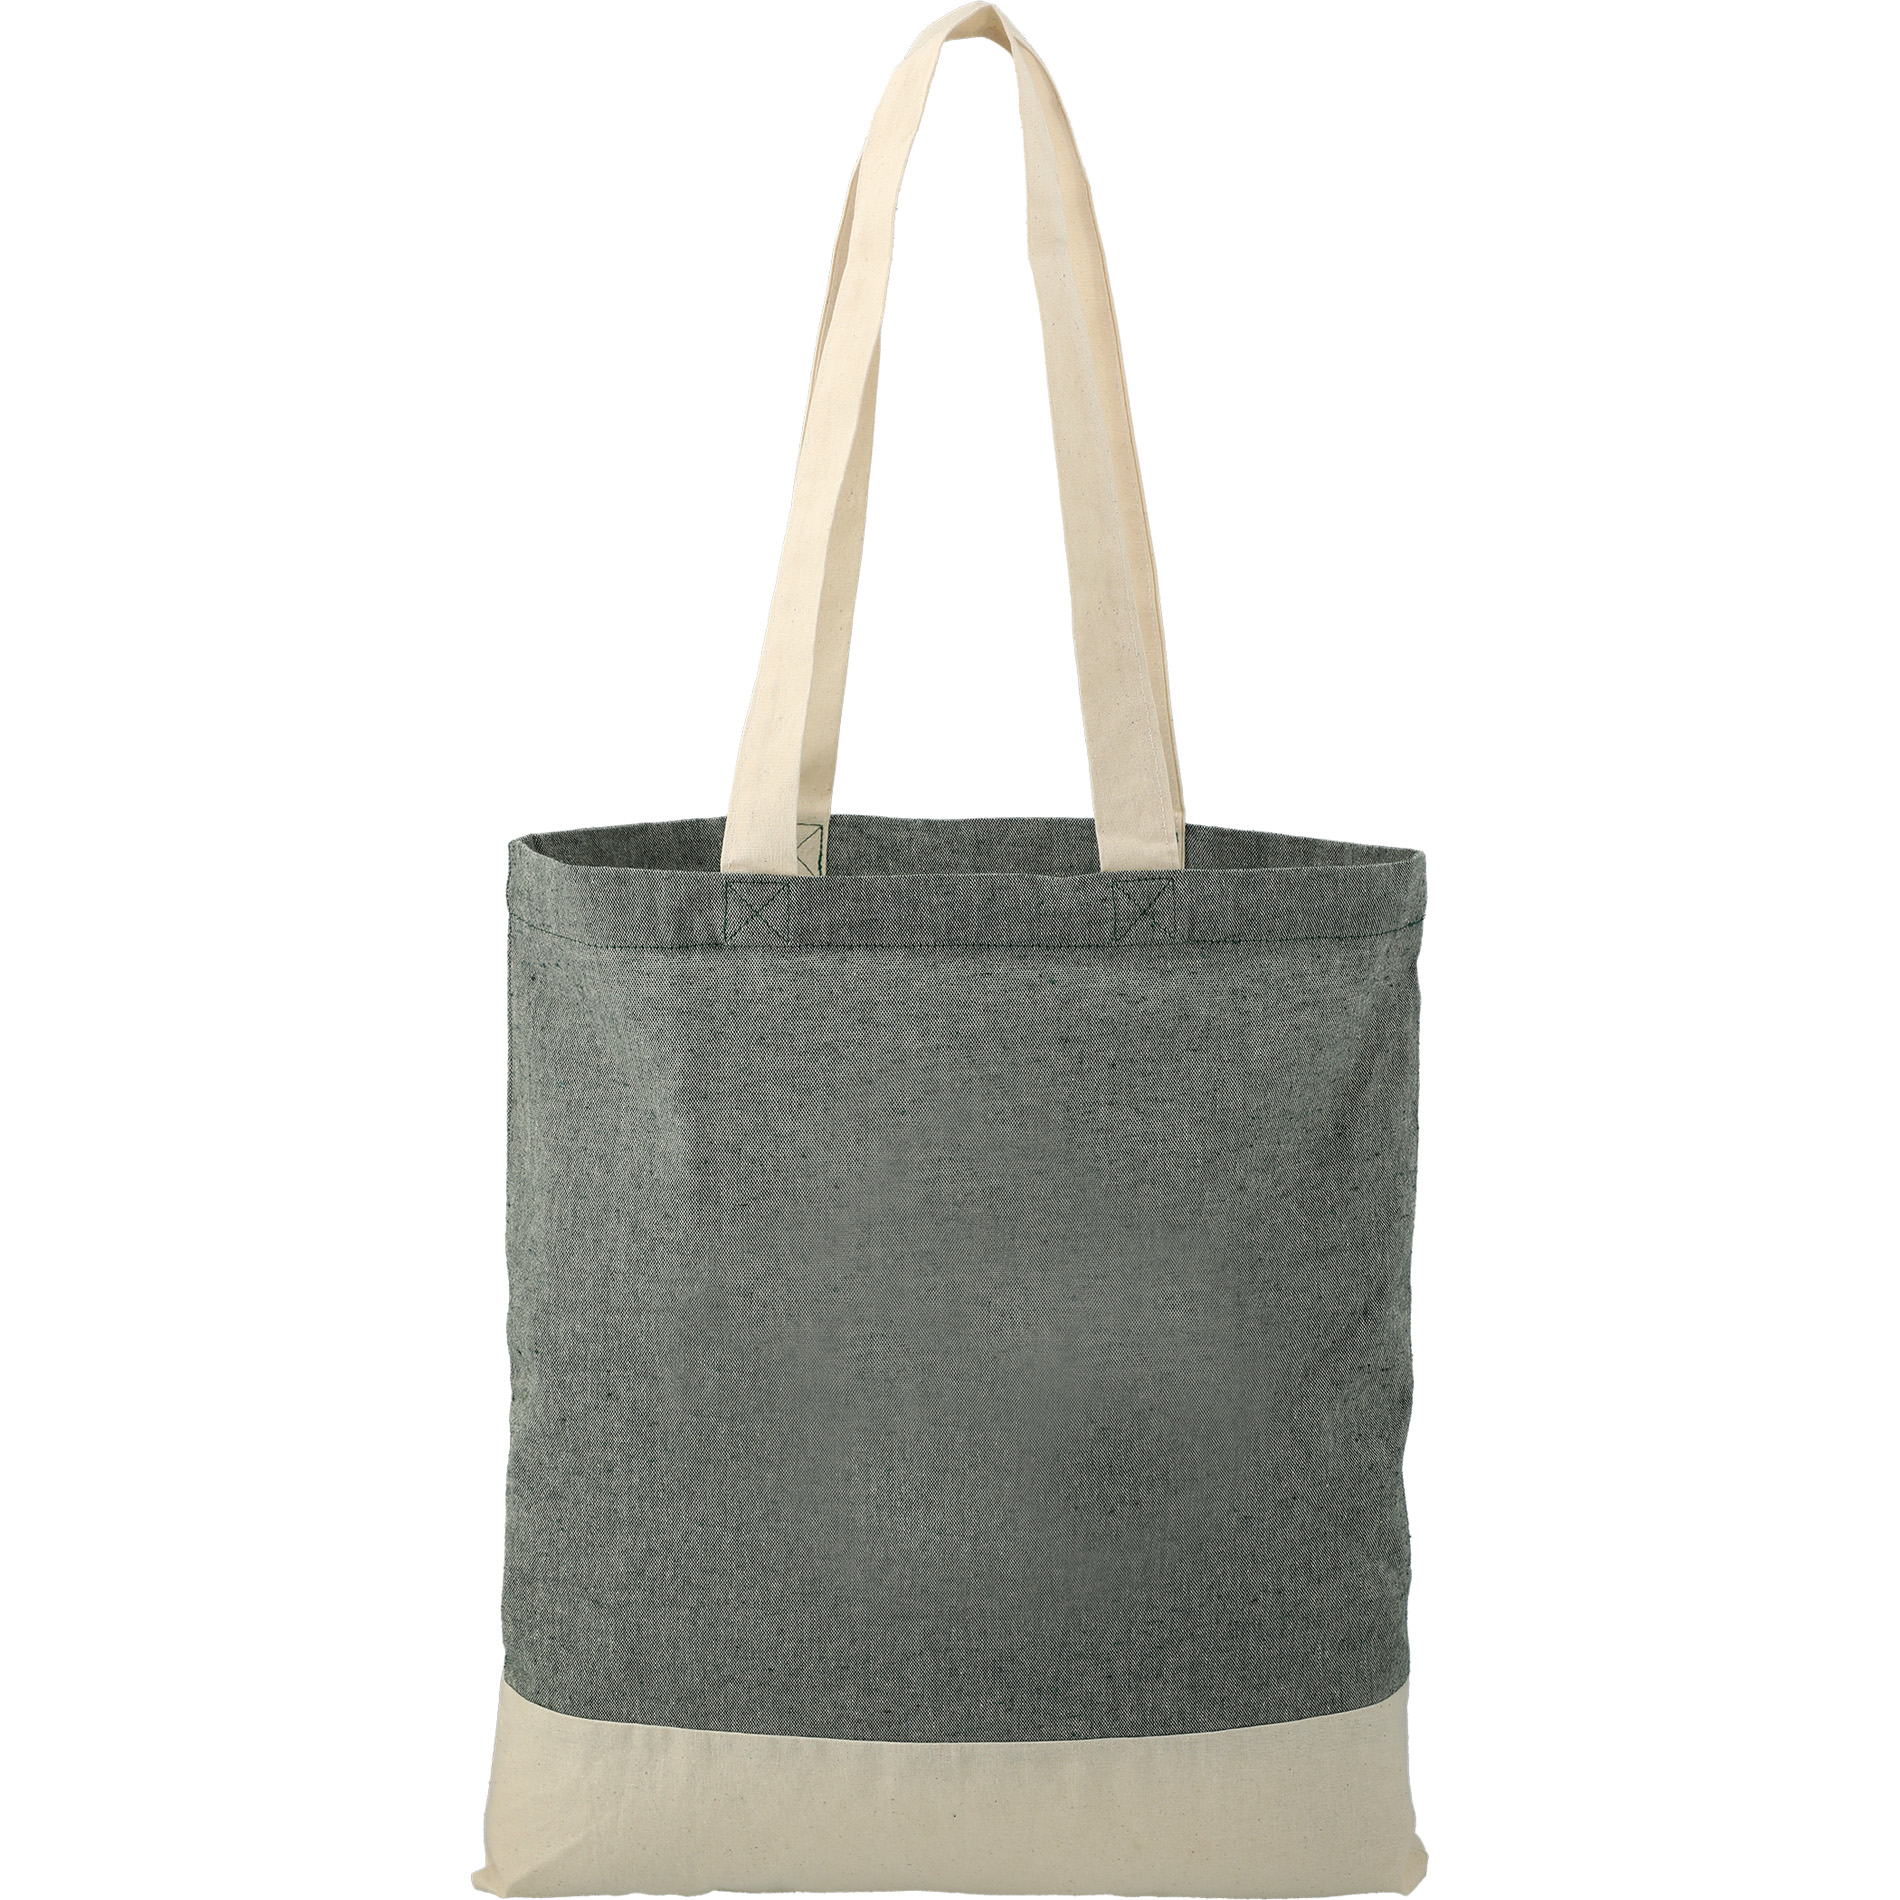 LEEDS 7901-08 - Split Recycled 5oz Cotton Twill Convention Tote